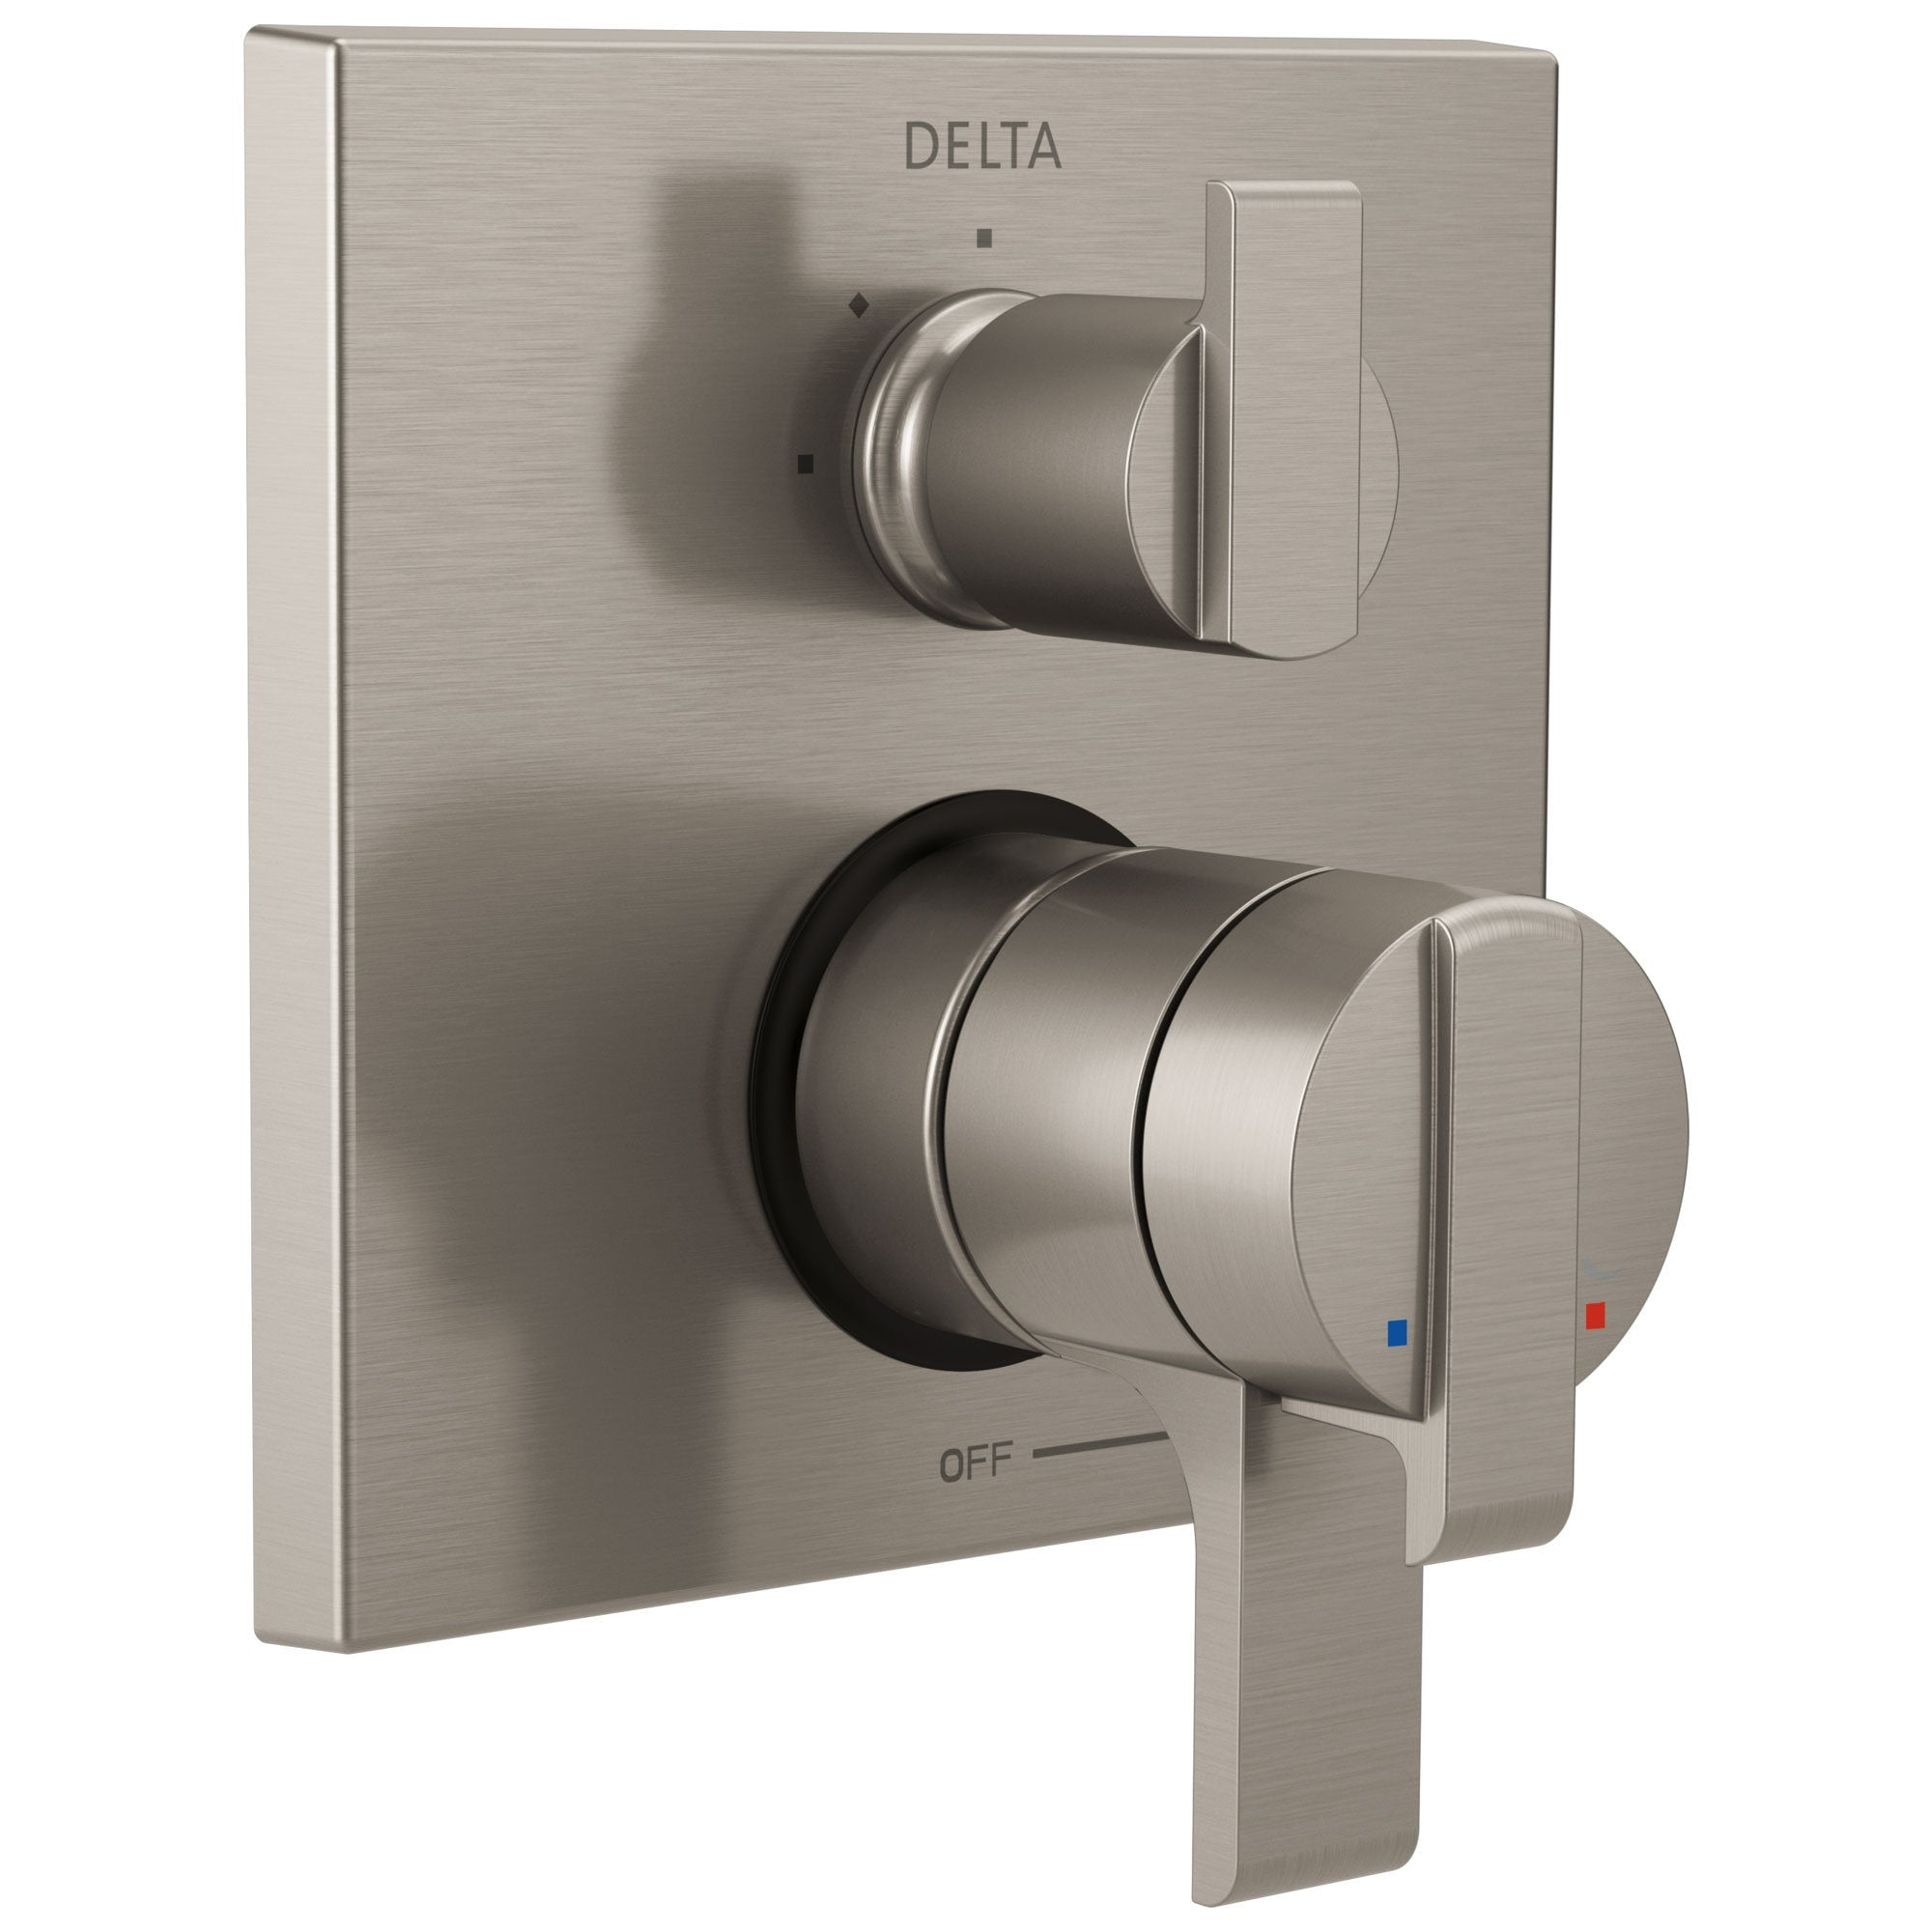 Delta Ara Stainless Steel Finish Modern Shower Faucet Control Handle with 3-Setting Integrated Diverter Includes Trim Kit and Rough-in Valve with Stops D2170V